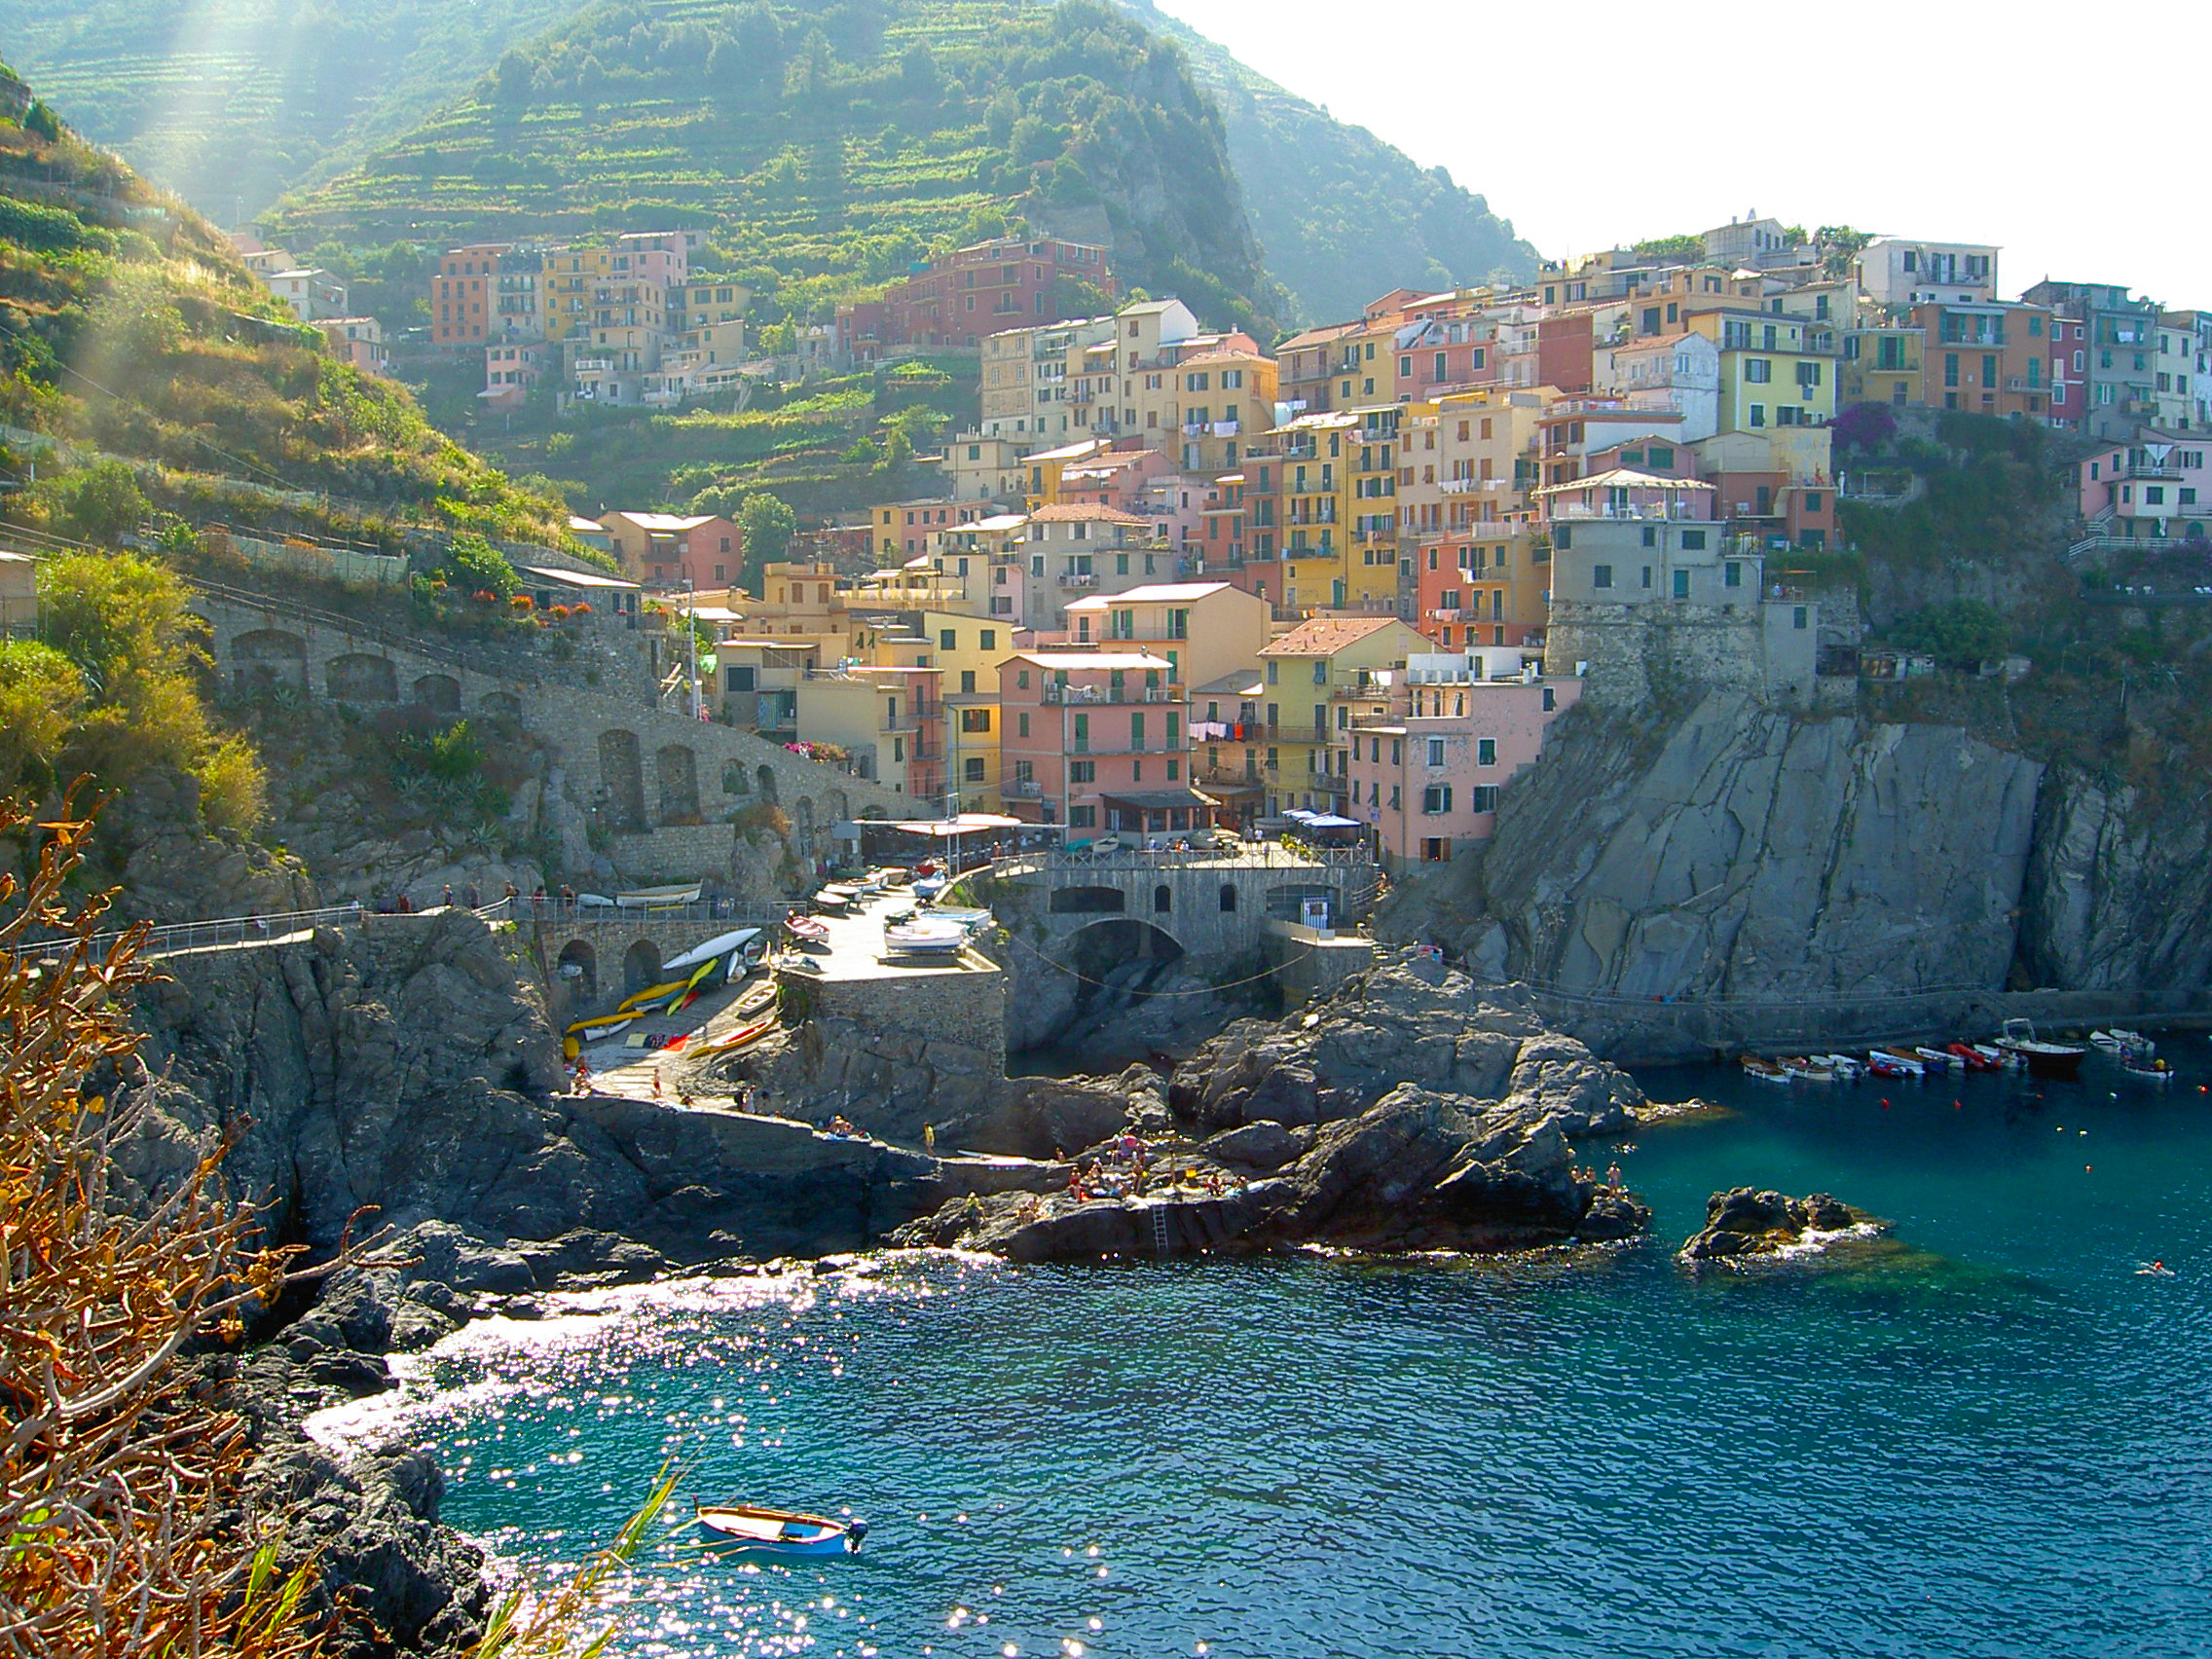 Manarola is one of the most photographed village of Cinque Terre. Best time to visit is in the evening